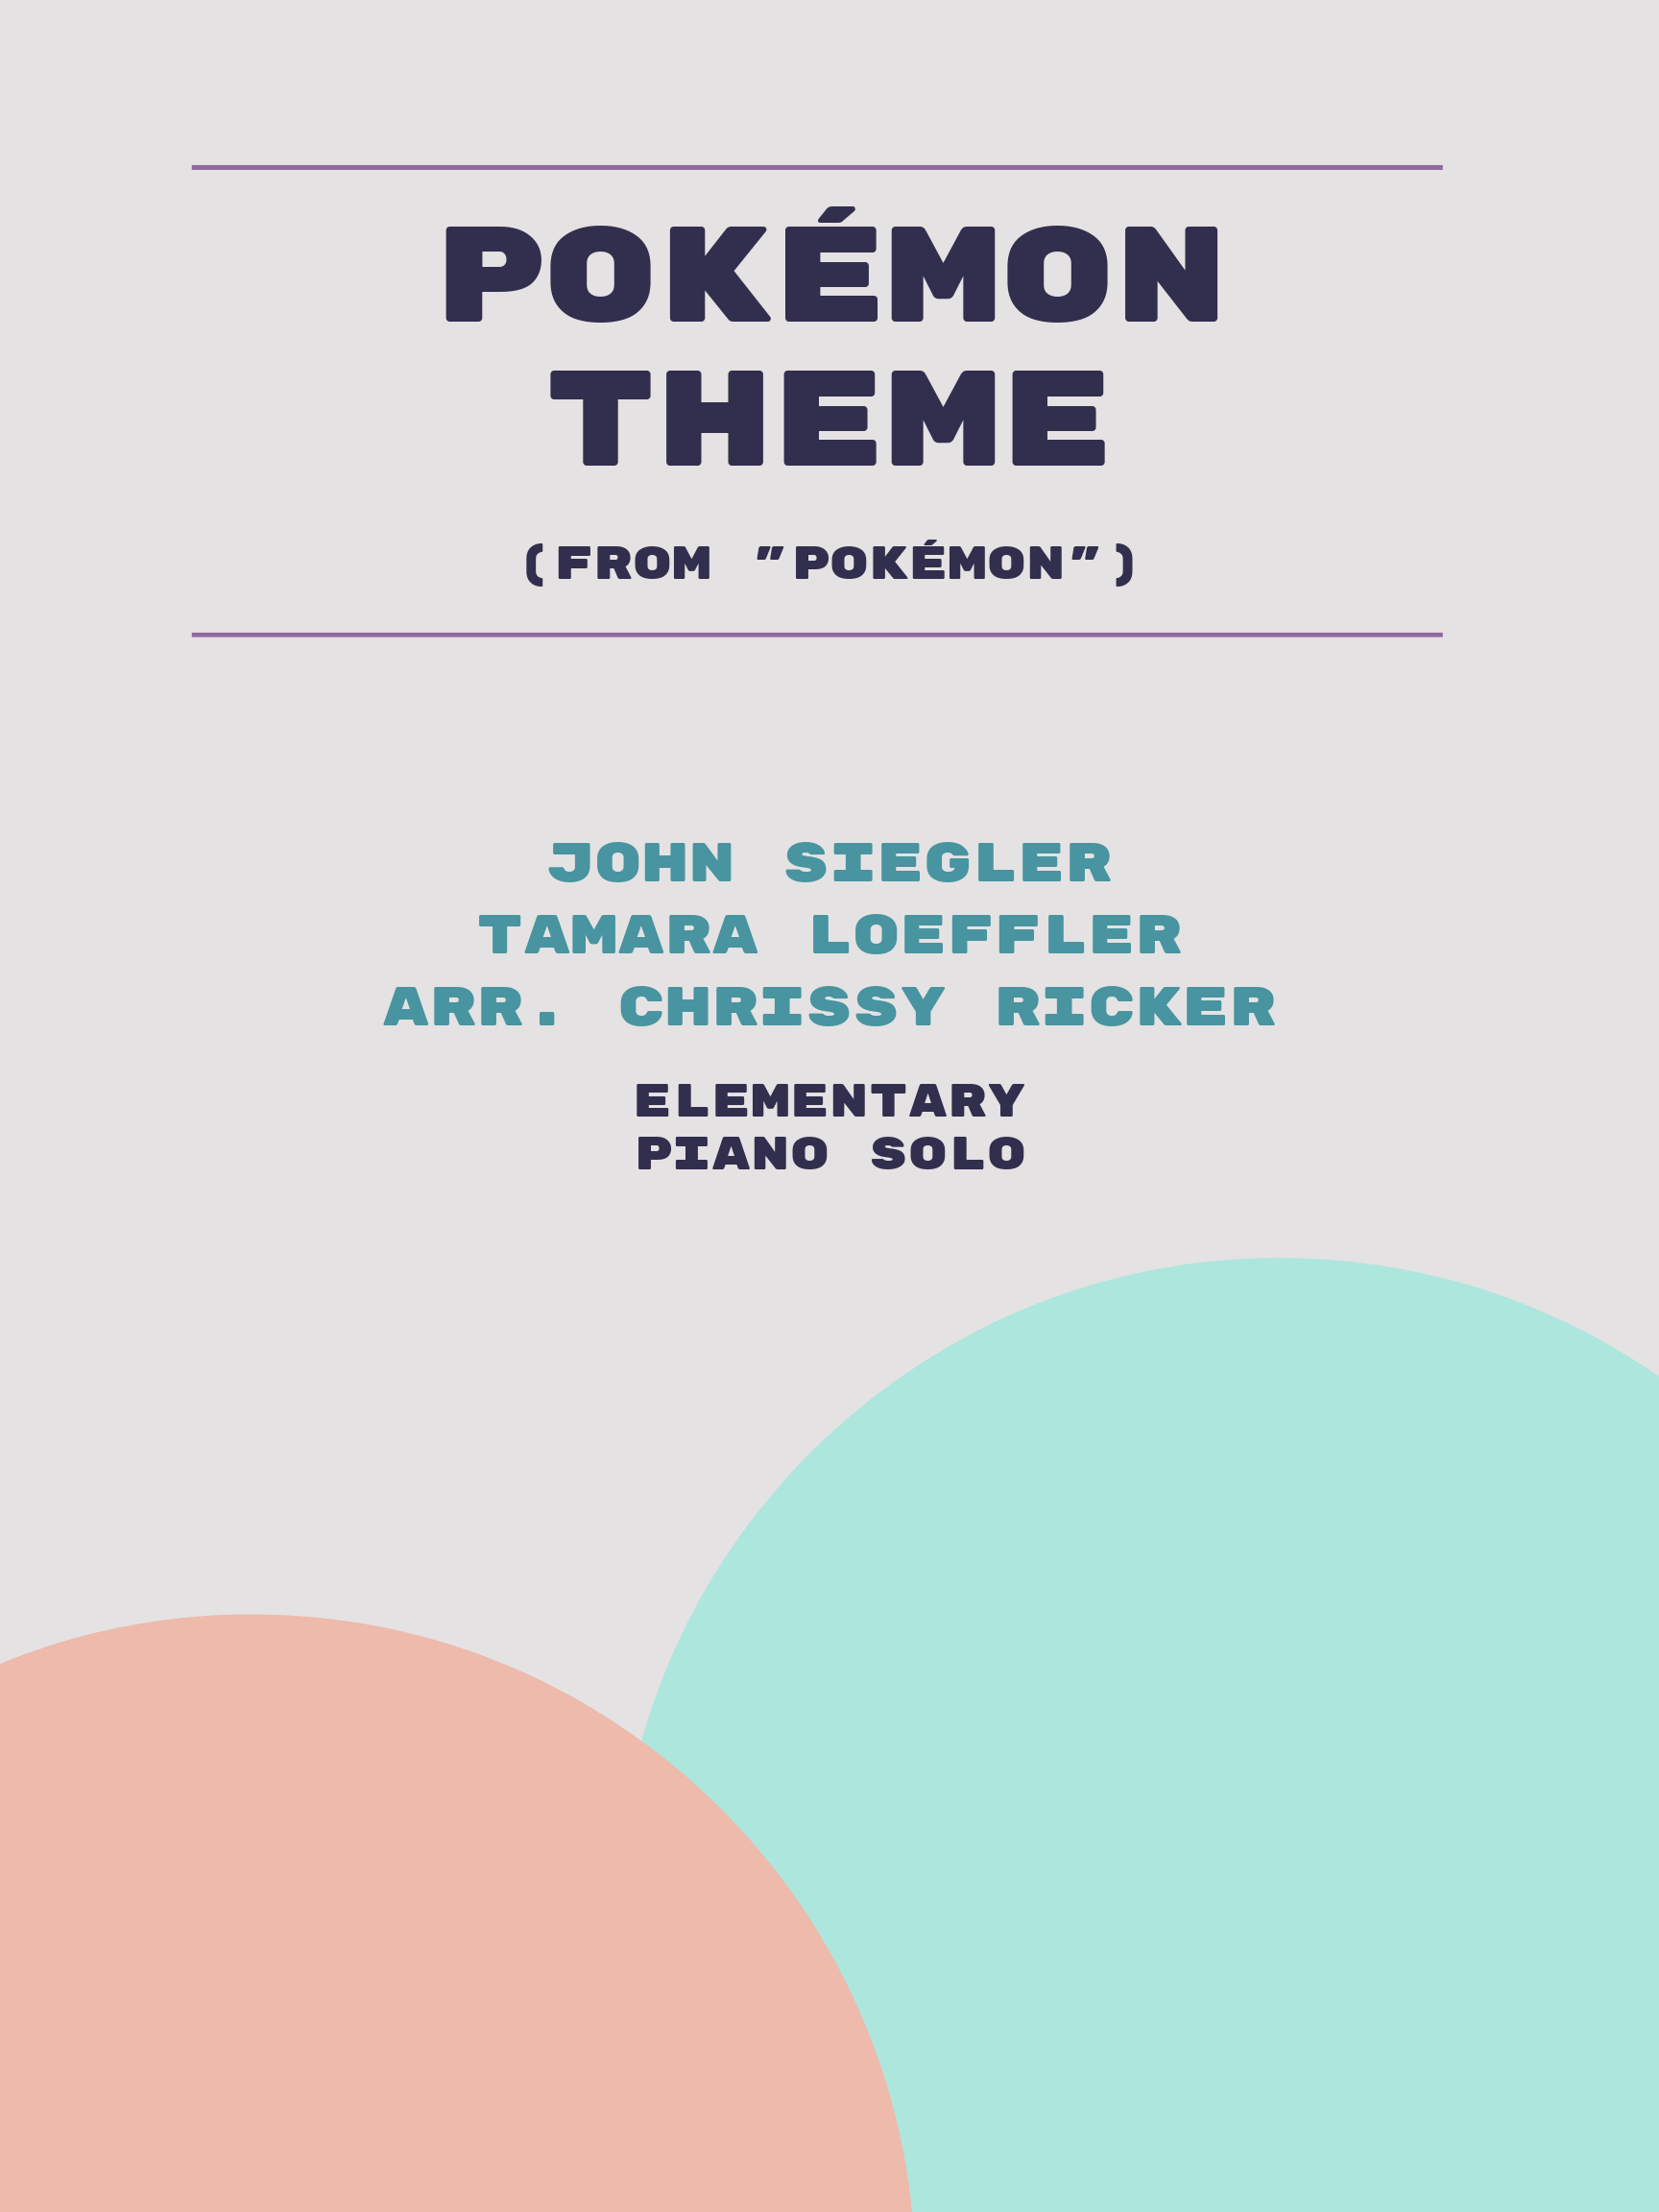 Pokemon Theme by John Siegler, Tamara Loeffler